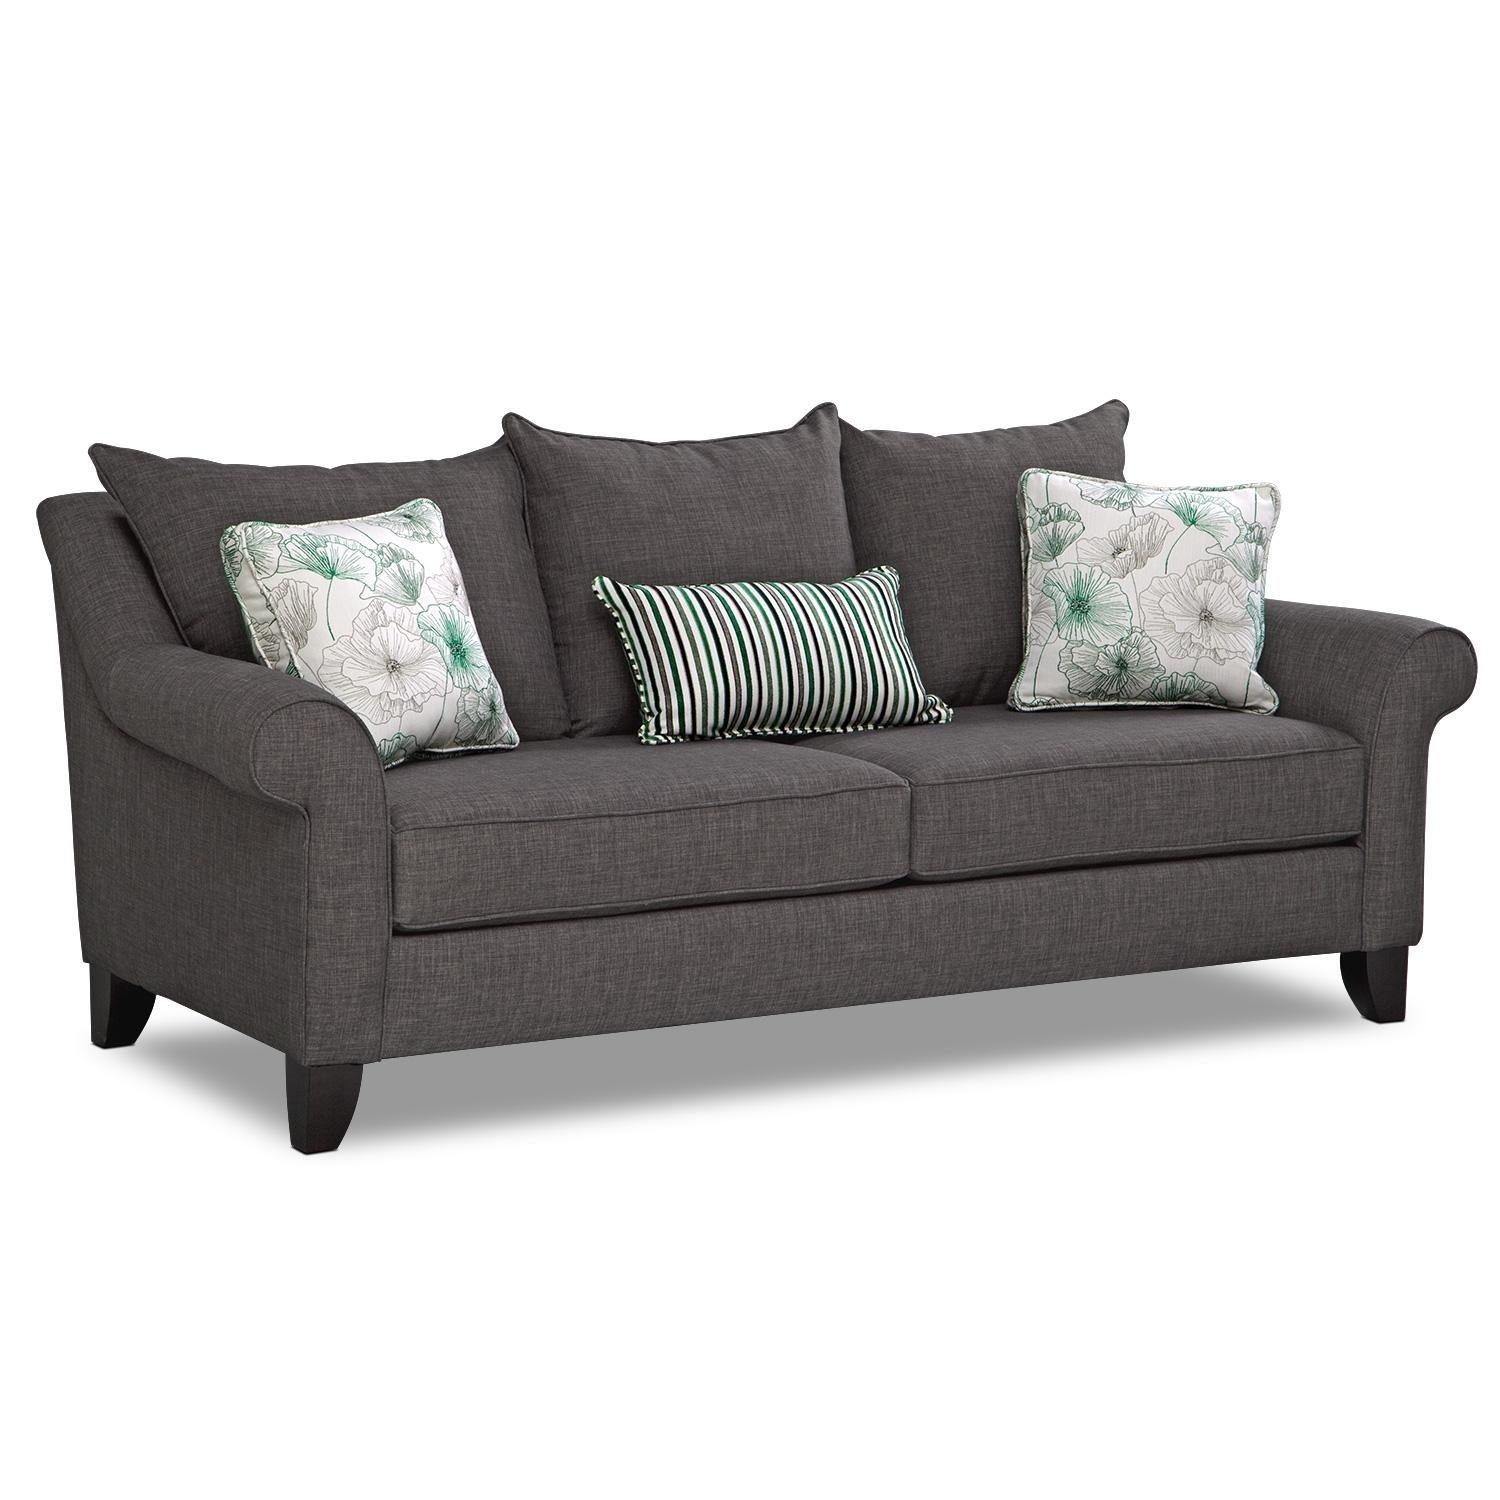 Living Rooms: Cheap Sectional | Value City Furniture Living Room In Value City Sofas (View 10 of 20)